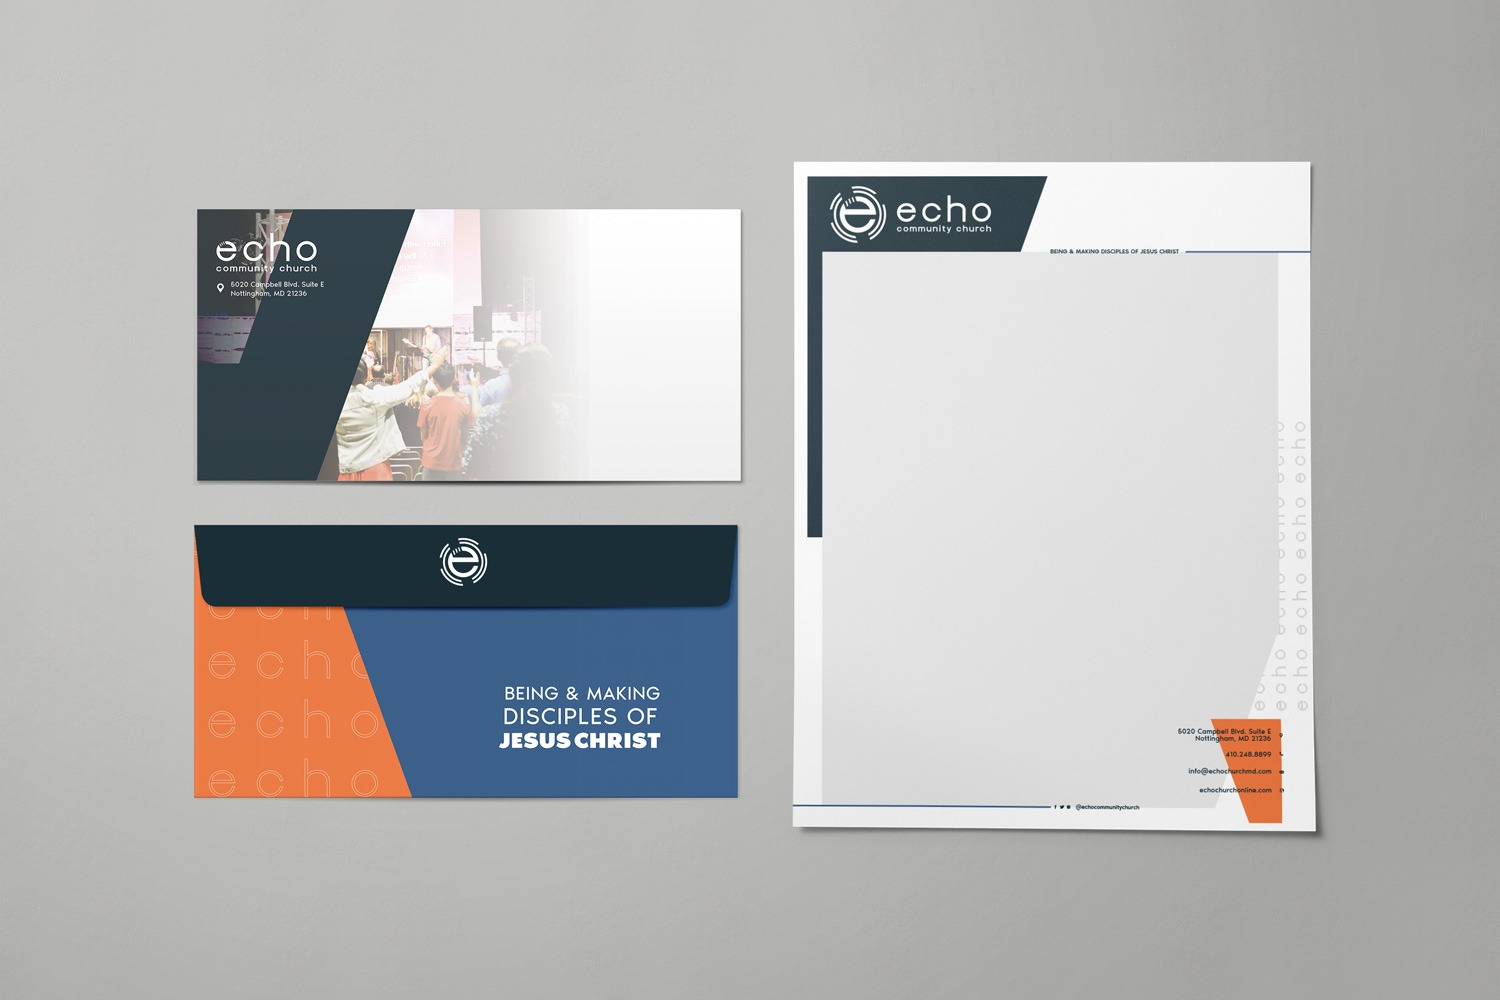 Church branding letterhead and envelope sets for Echo Community Church by Abstract Union